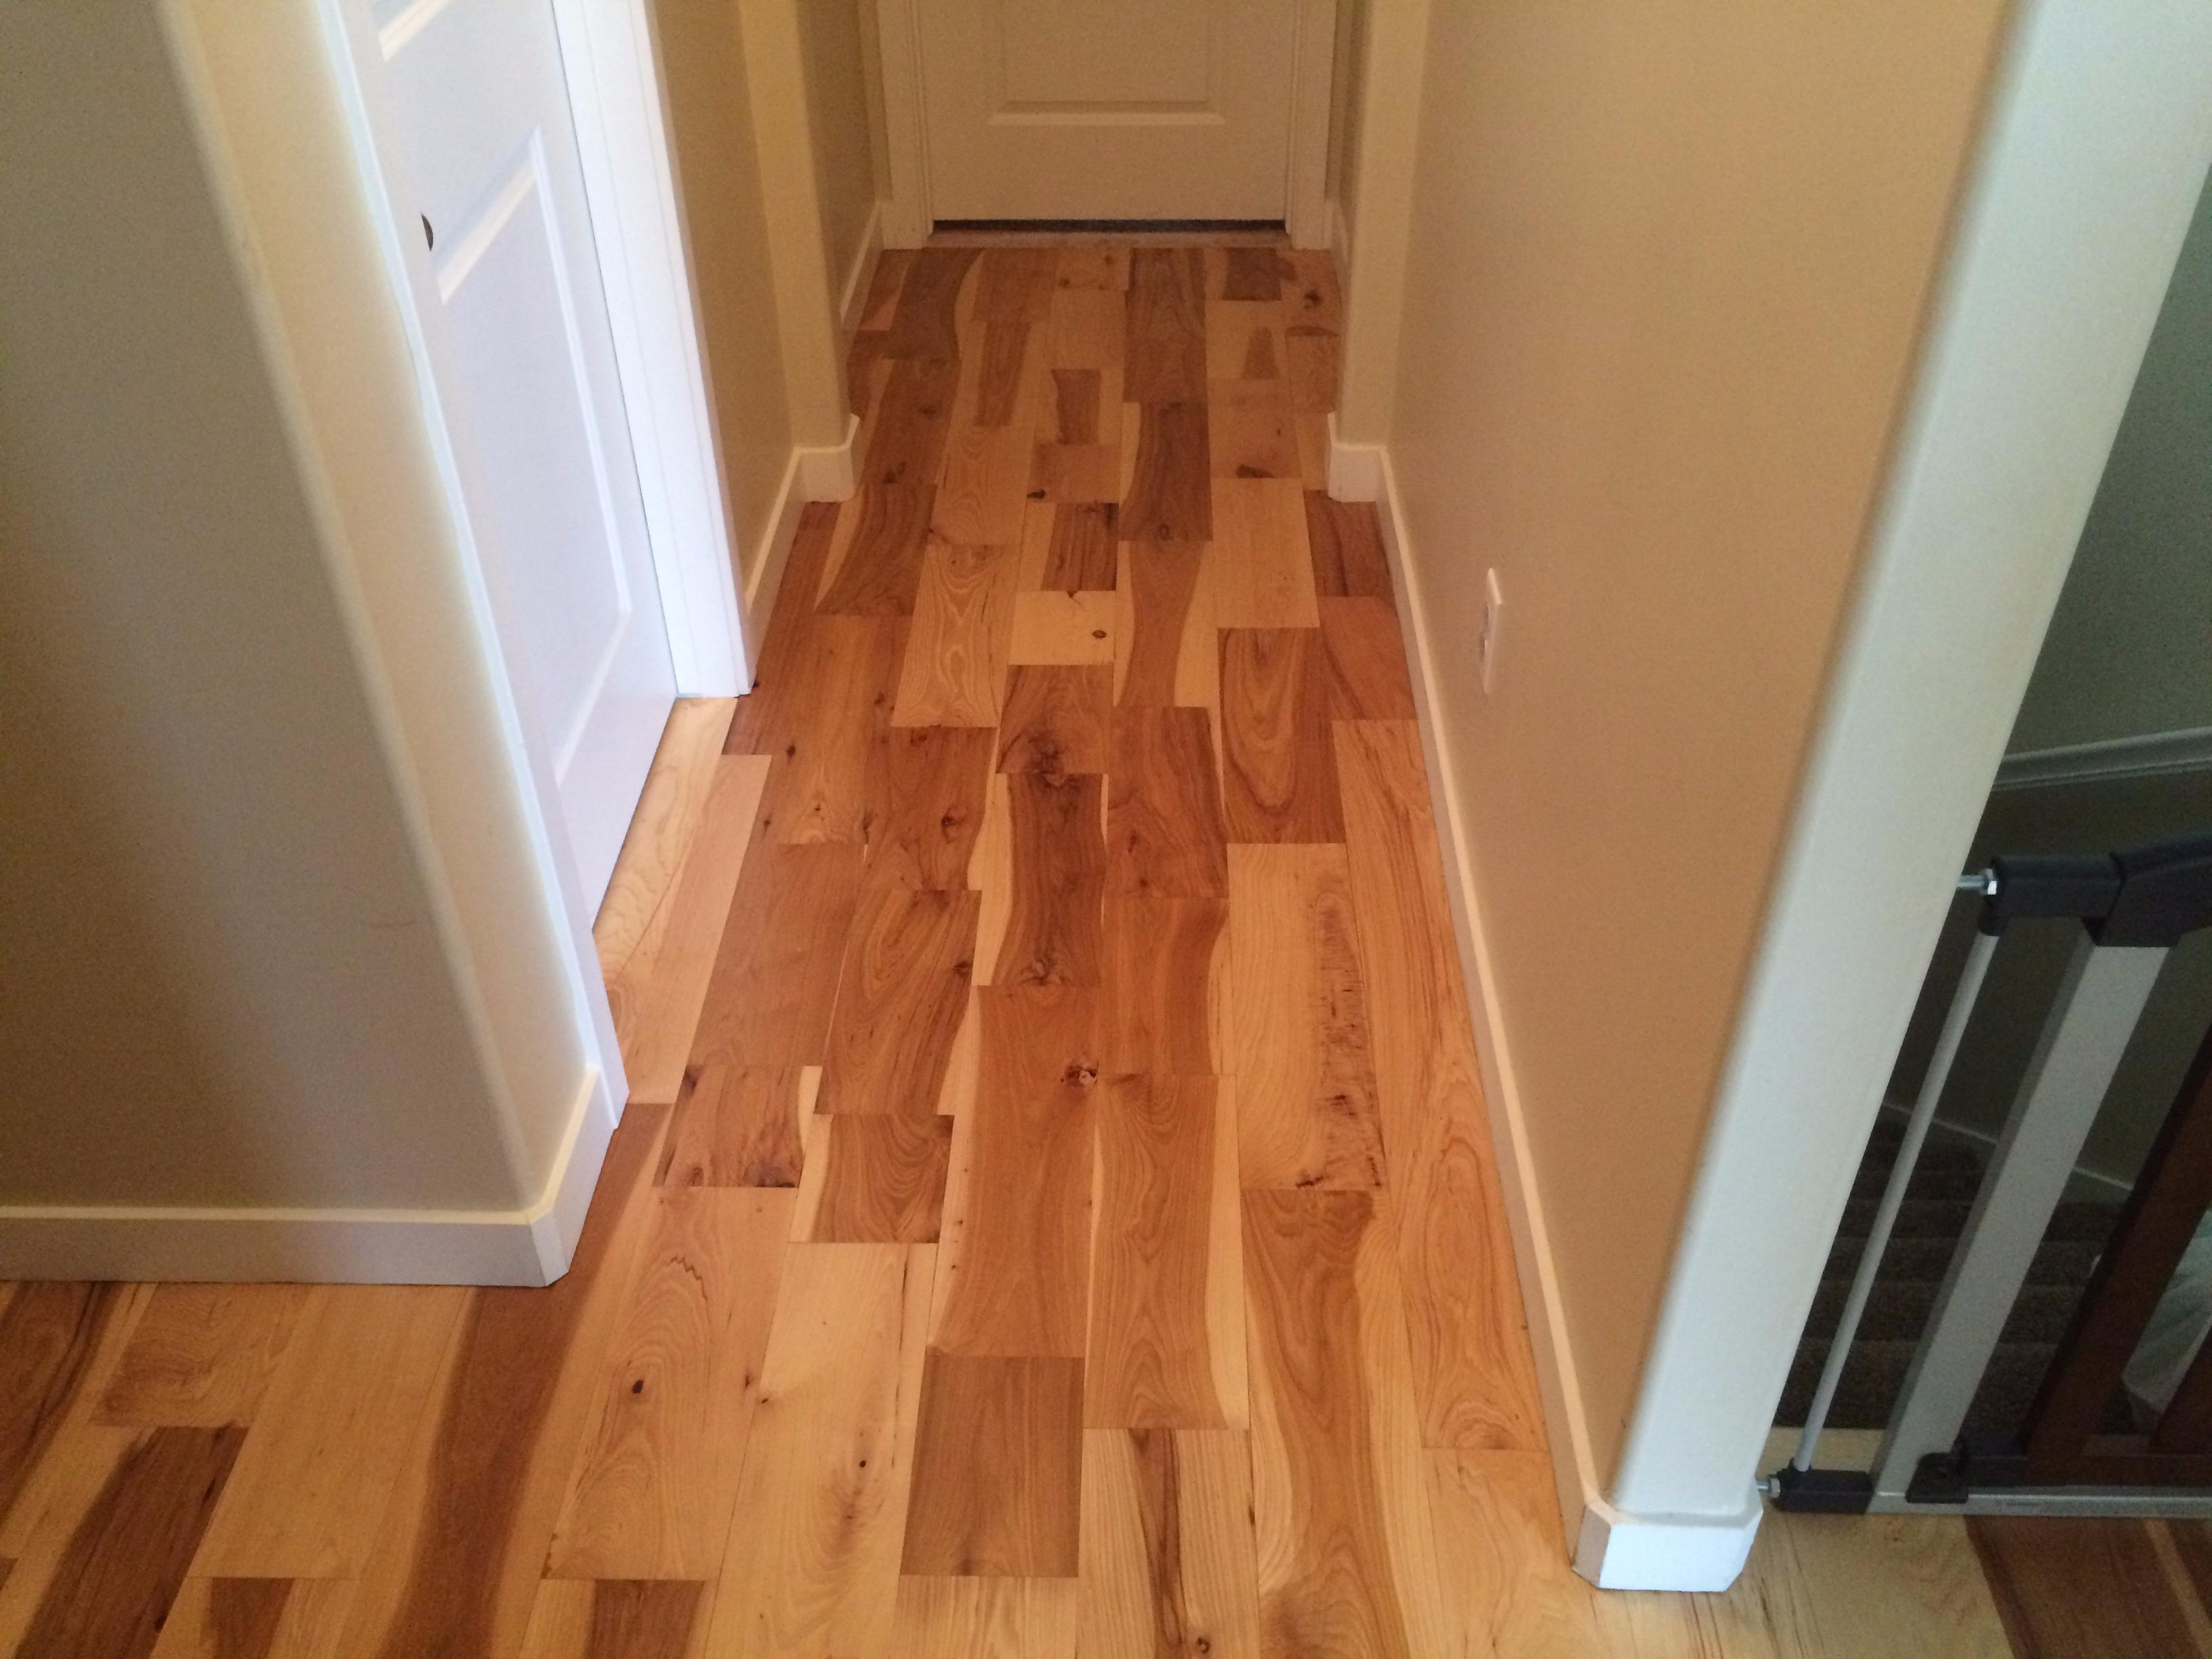 Lambert hardwood flooring coupons near me in ogden 8coupons for Hardwood flooring near me